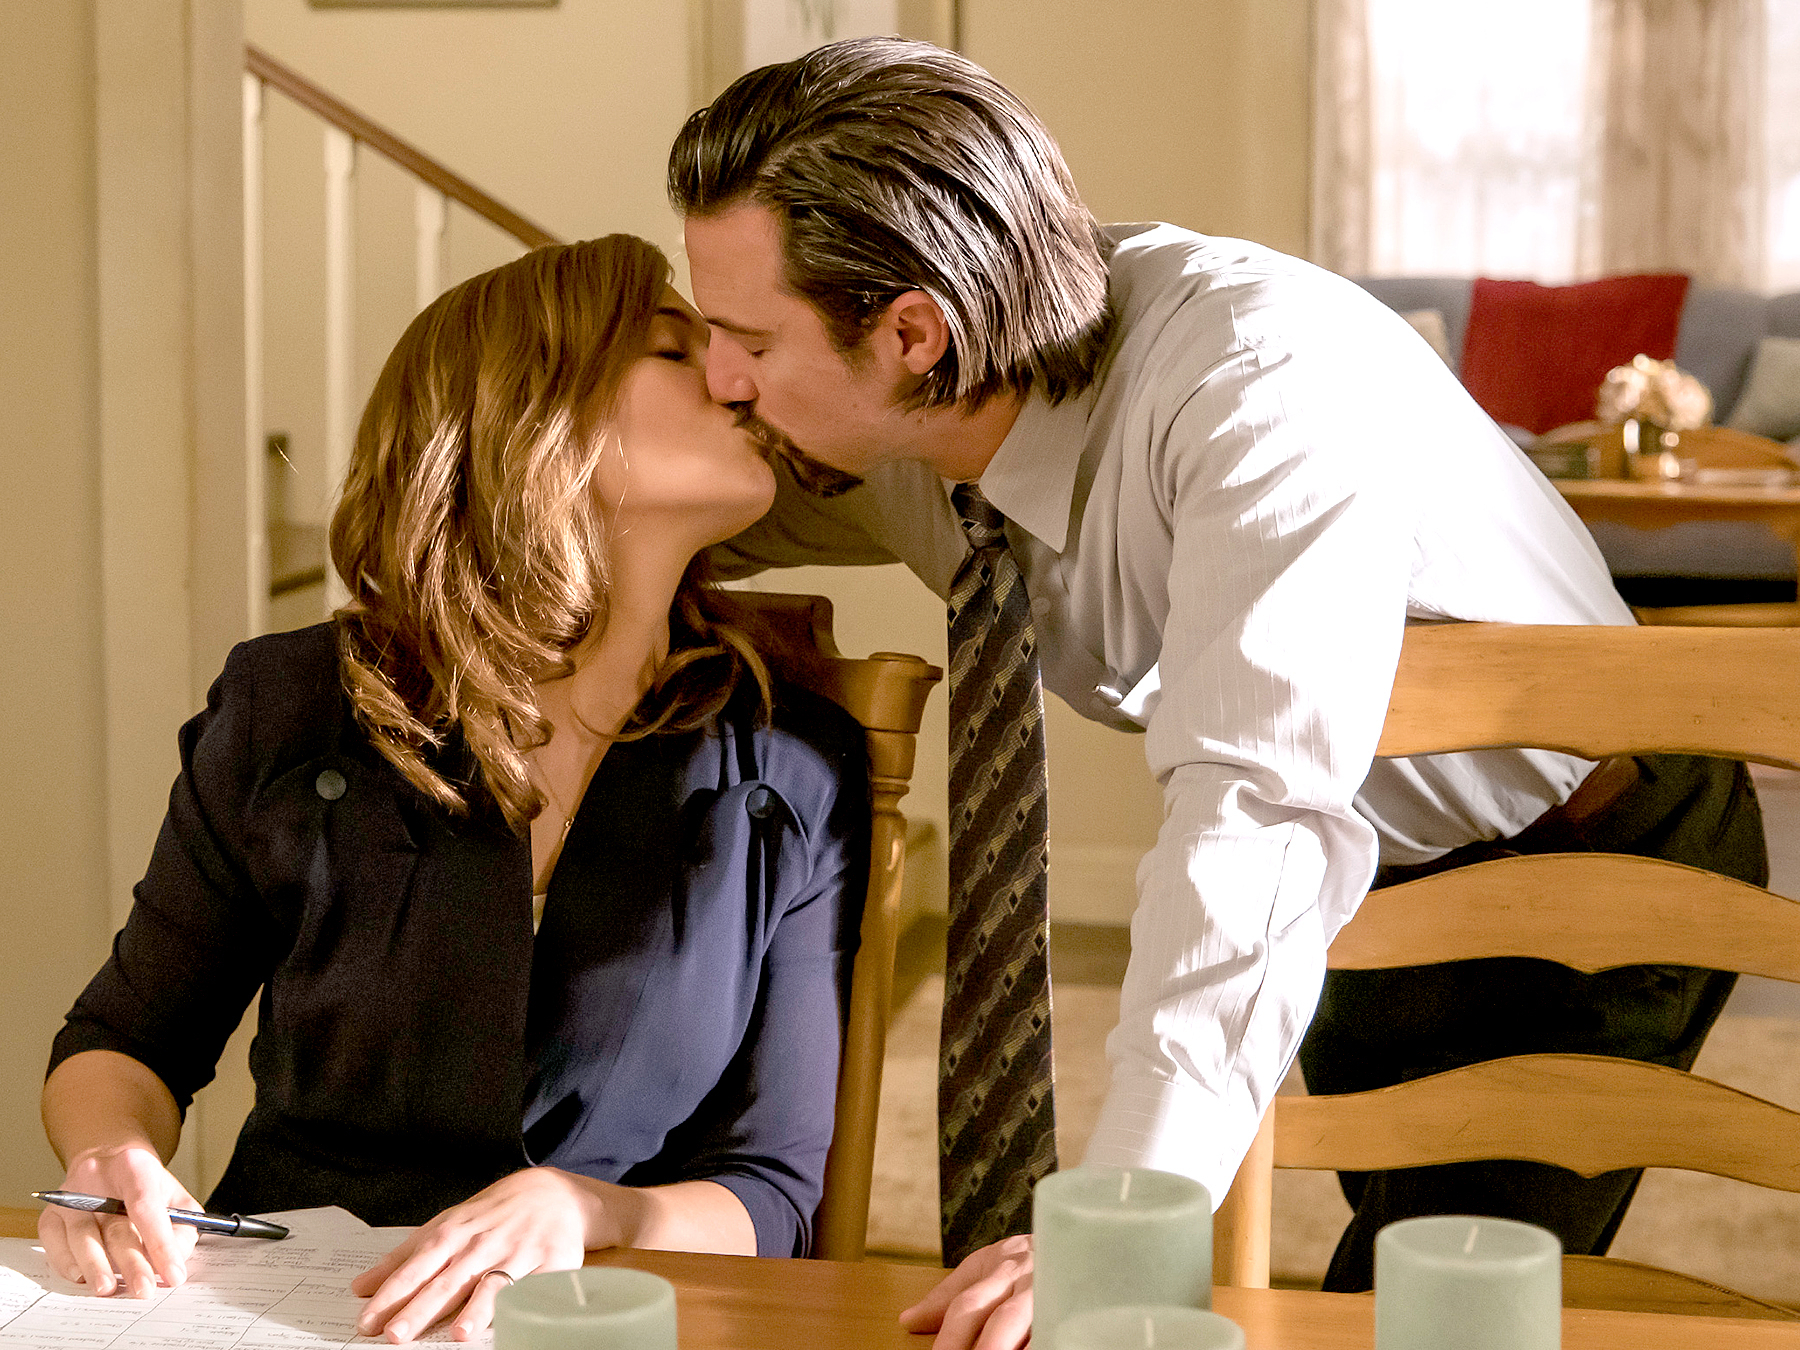 Mandy Moore as Rebecca and Milo Ventimiglia as Jack in This Is Us.